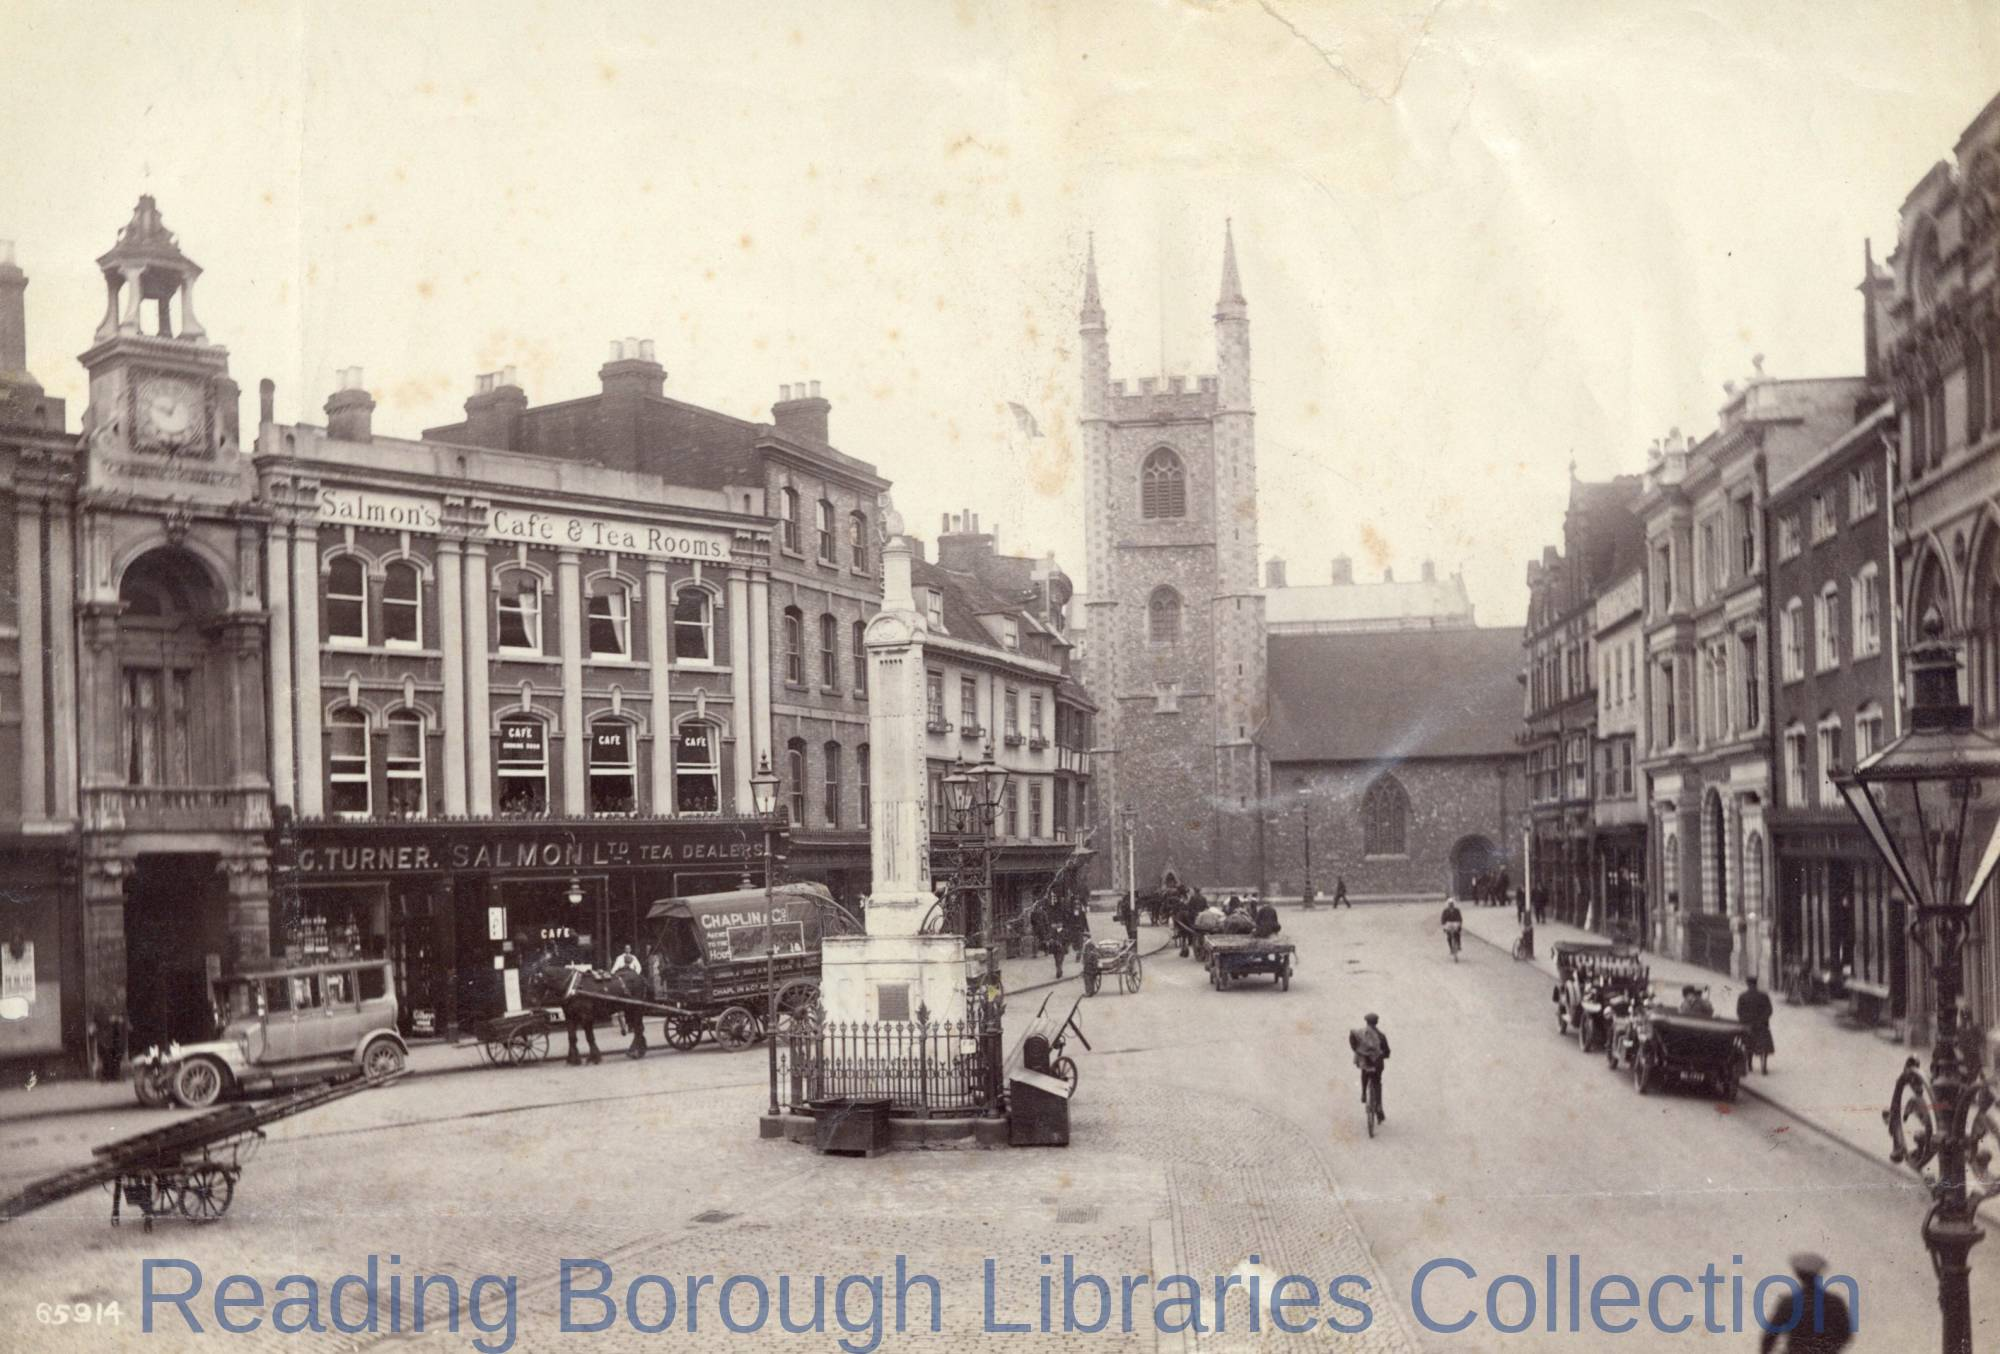 Market Place, Reading, looking north to St. Laurence's Church, c.1920